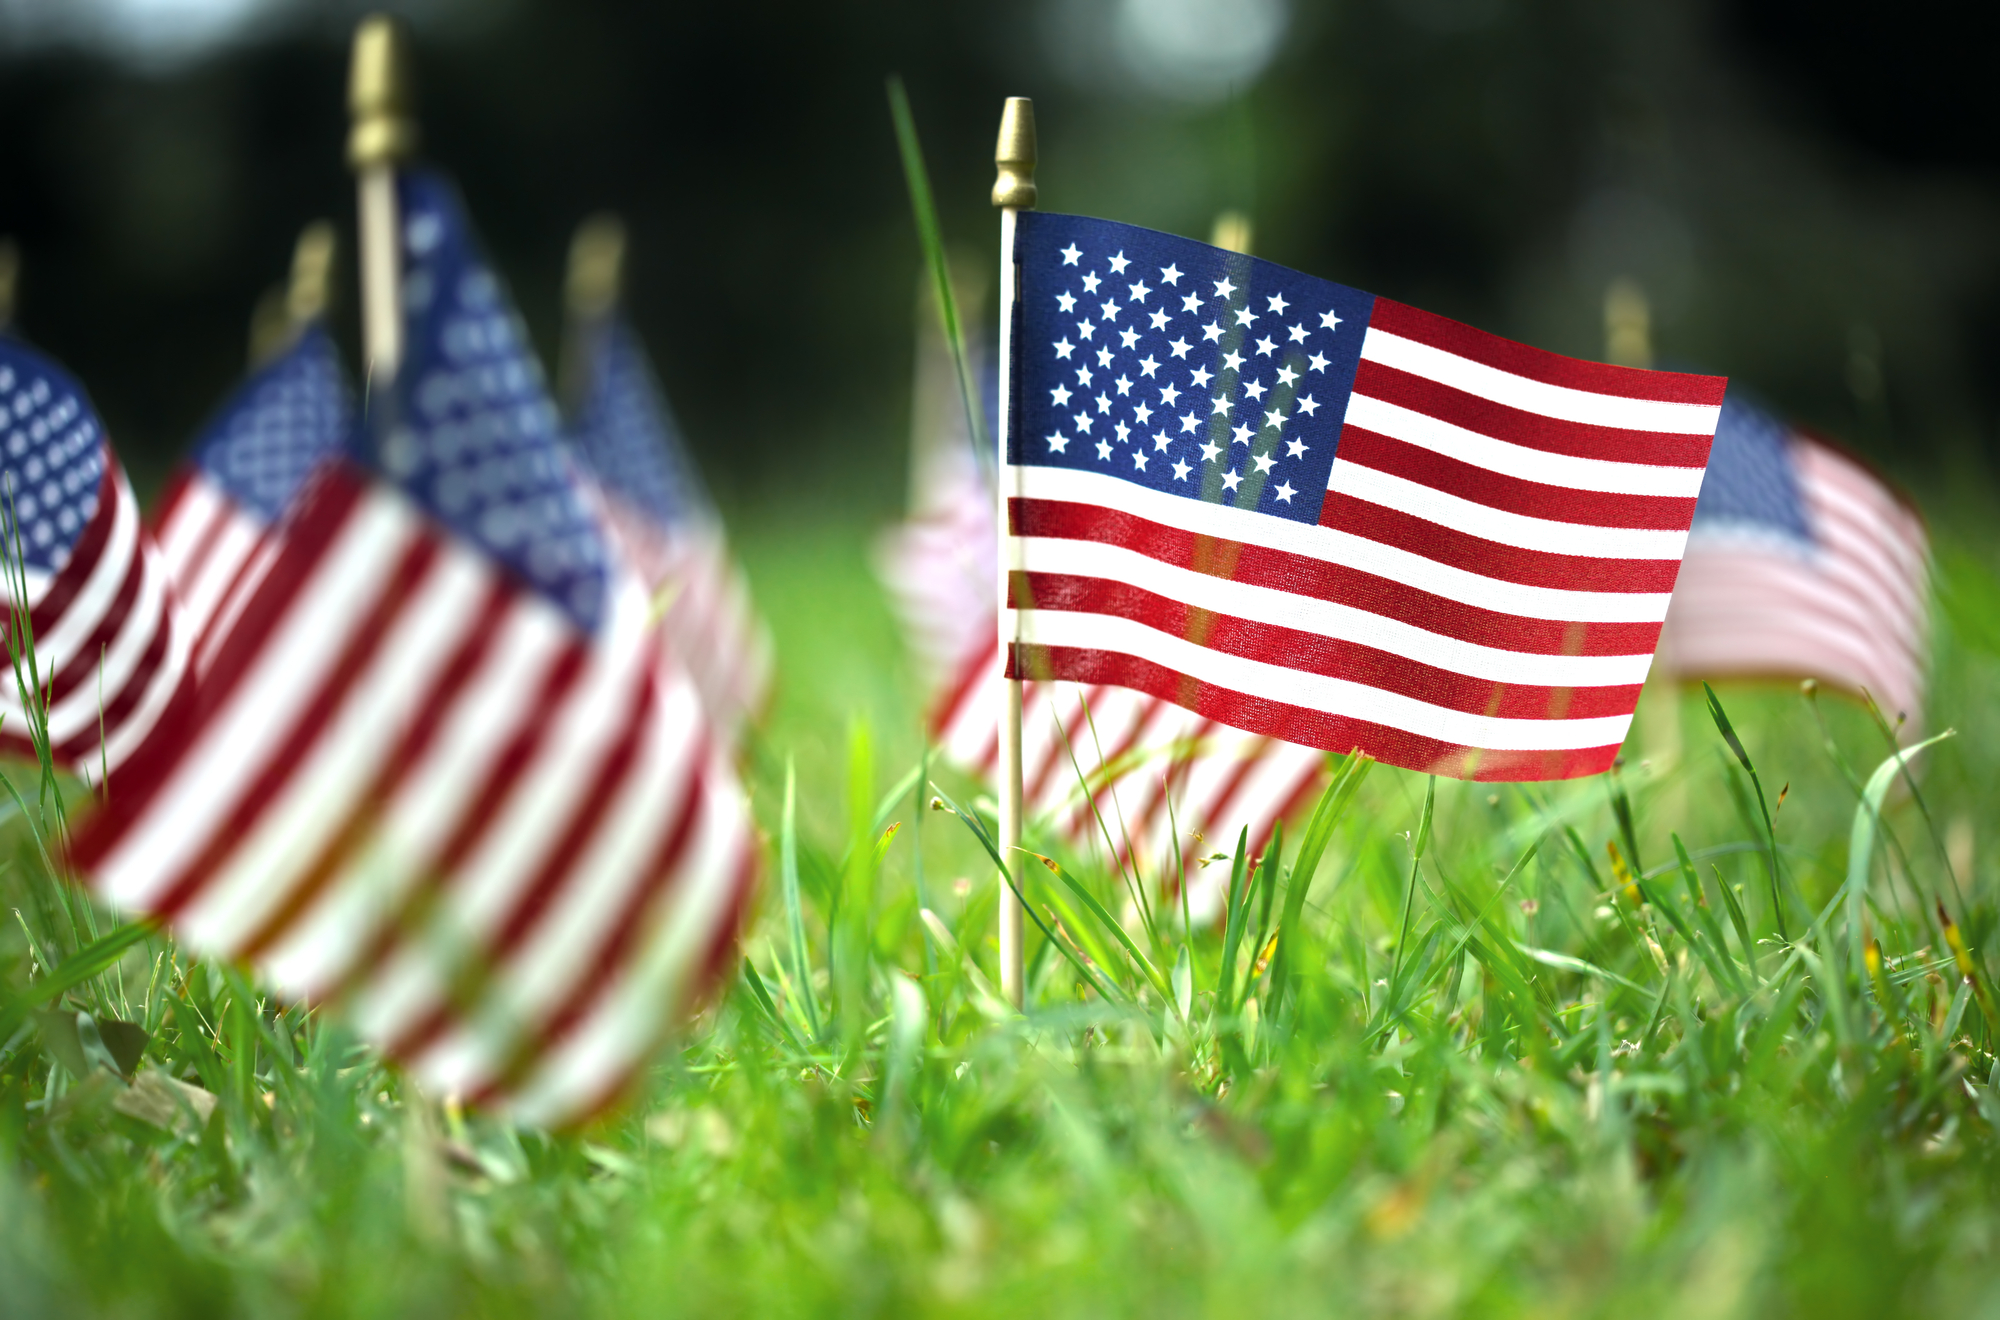 American Flags in Grass